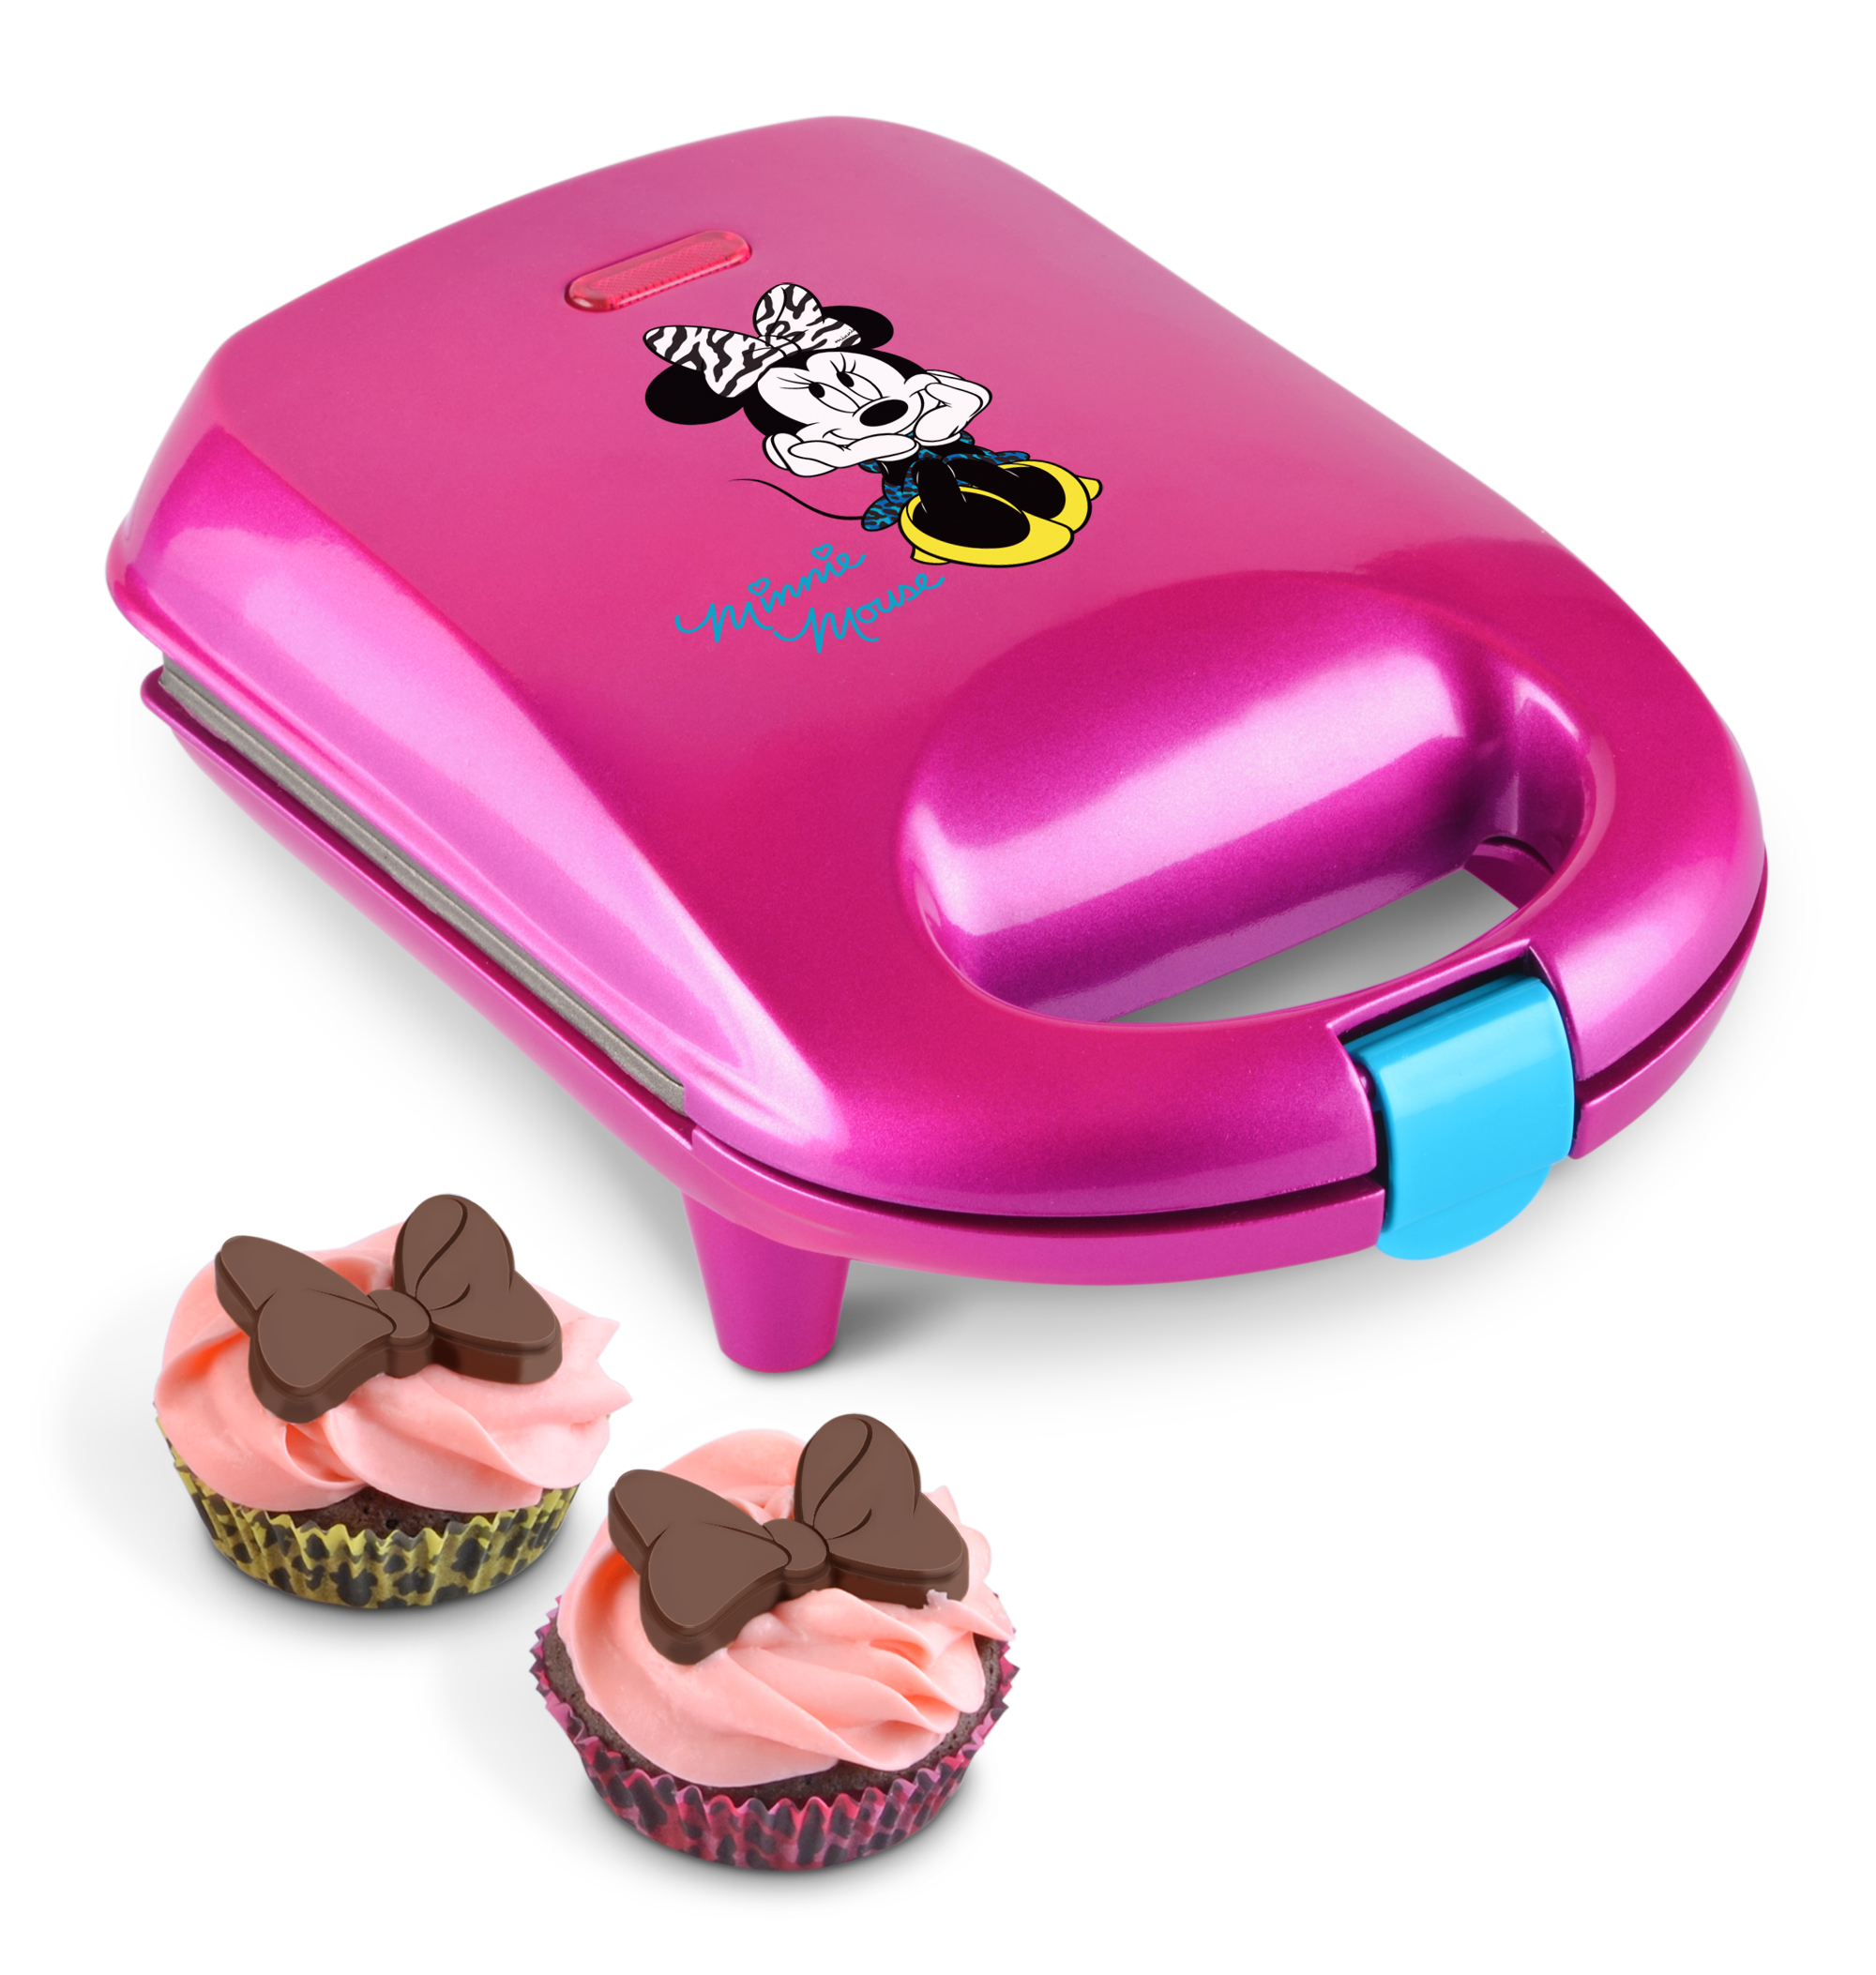 Disney Minnie Mouse Mini Cupcake Maker